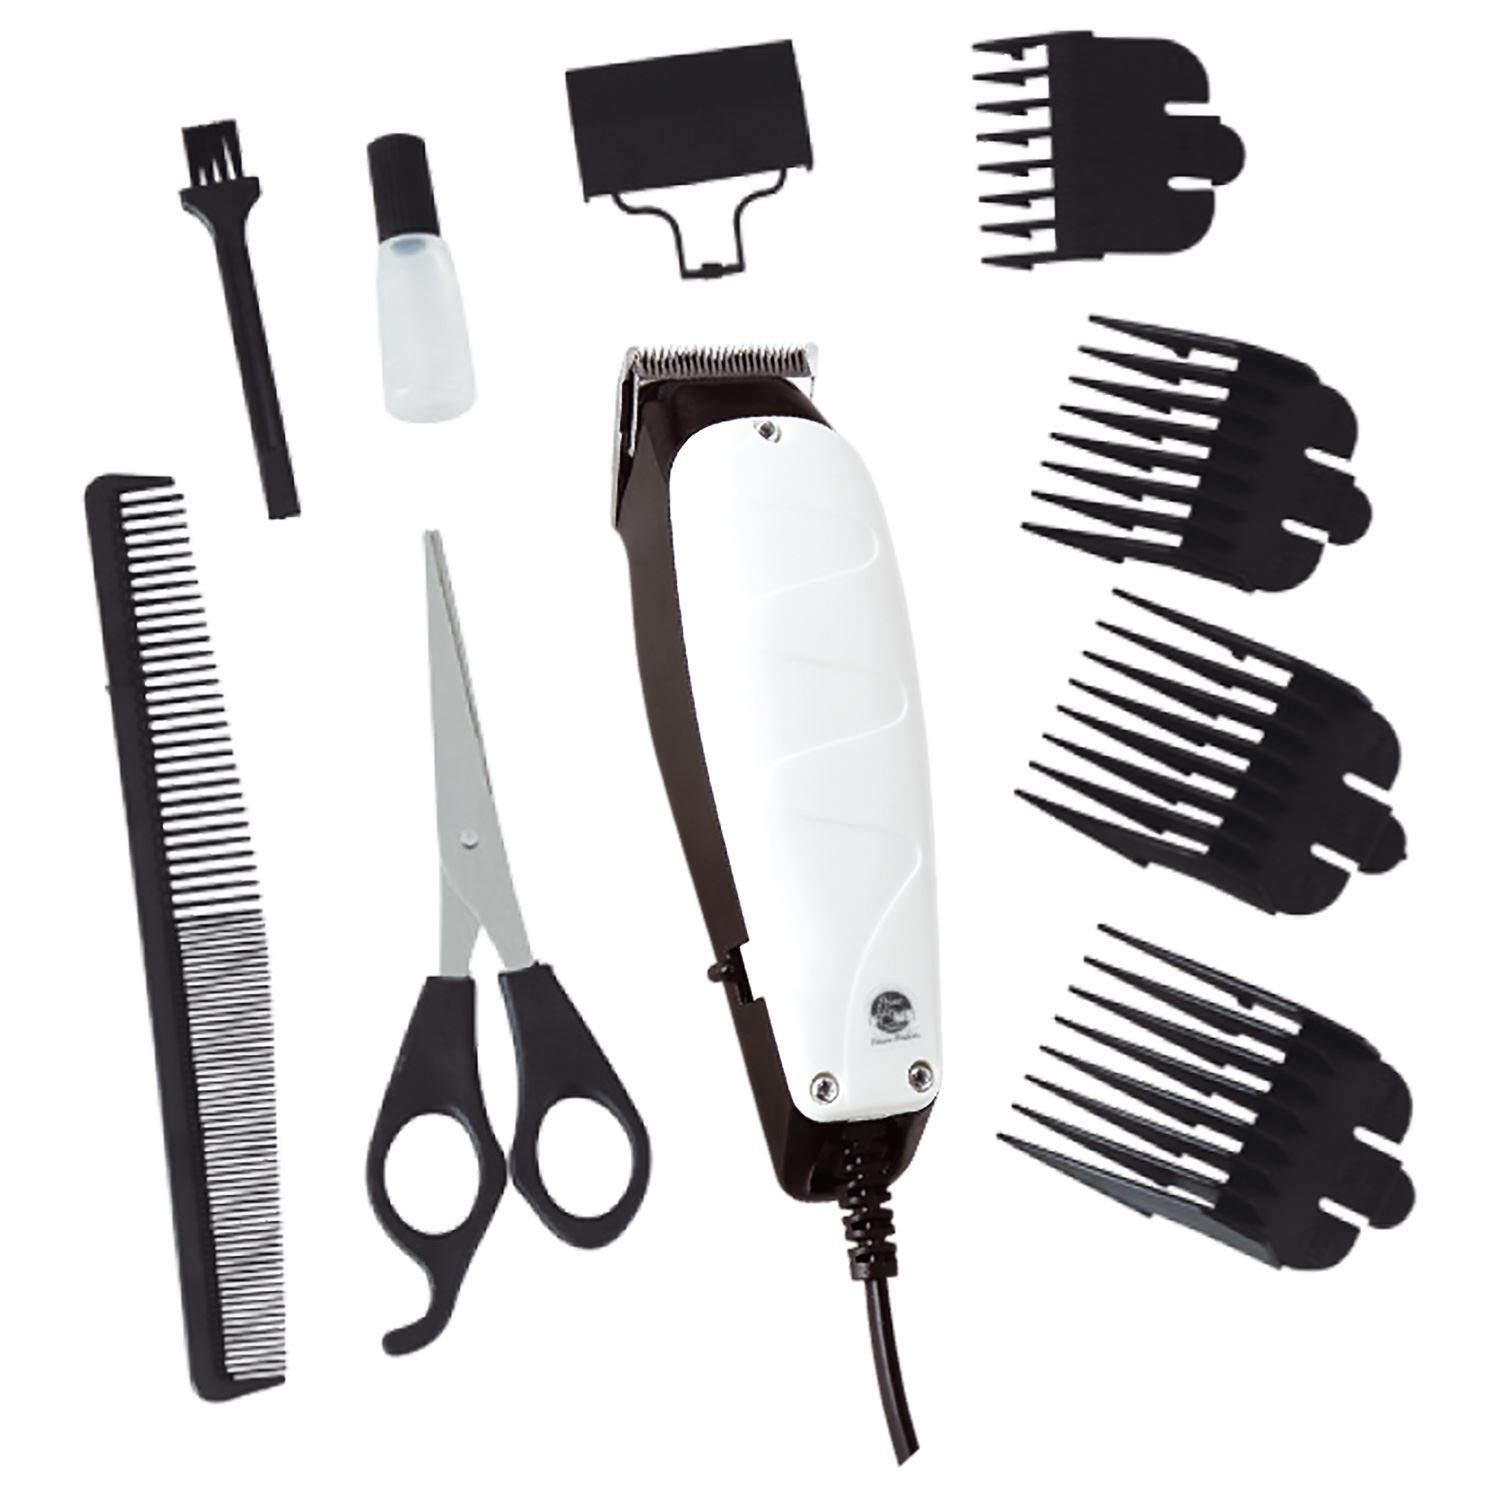 Generic Hair Trimmeral Mains Pet D Pet Dog Paws 10Piece Clipper Grooming Professional Mains Kit Hair Trimmer Paws 10Piece Professio